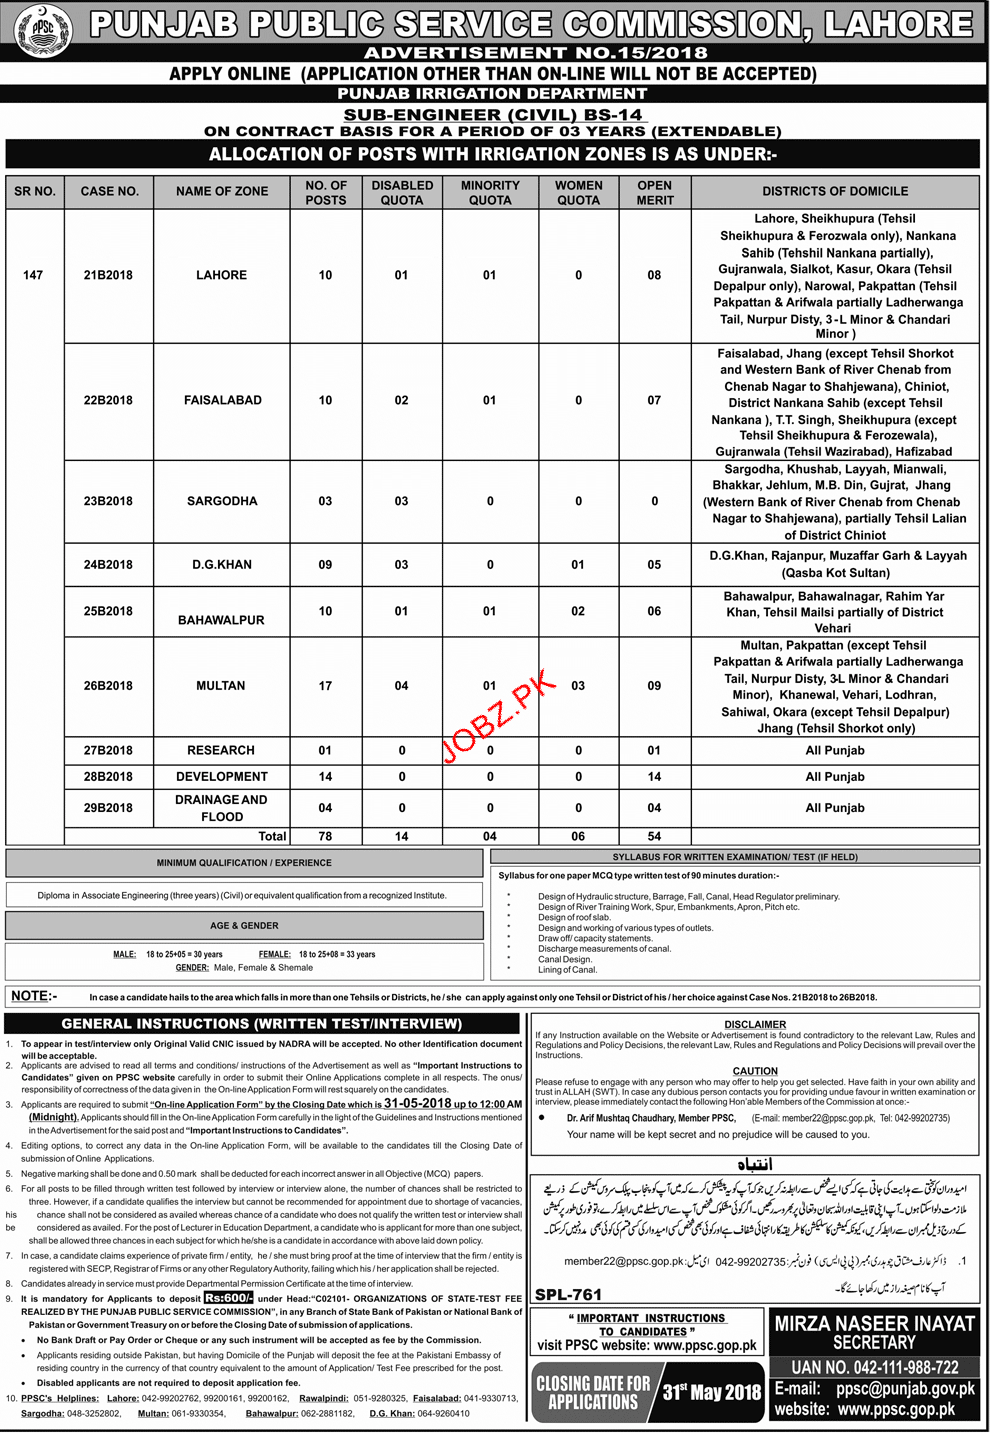 Punjab Irrigation Department Sub Engineers Job Through PPSC